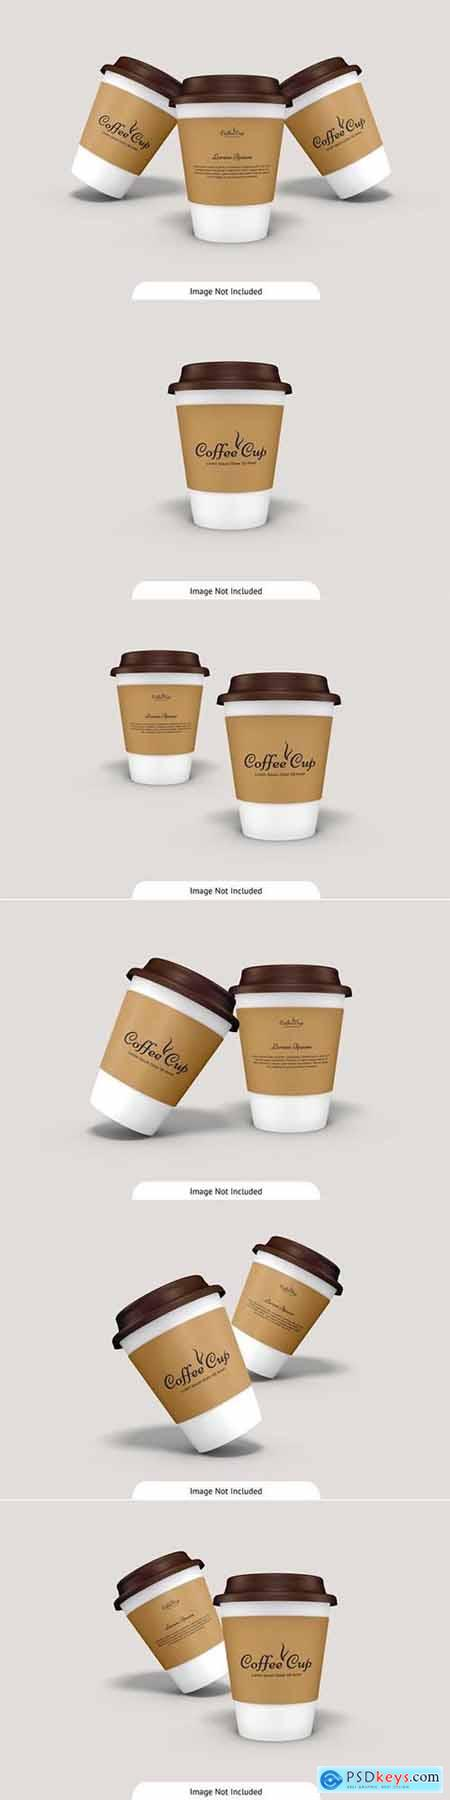 Coffee cup with cardboard mockup